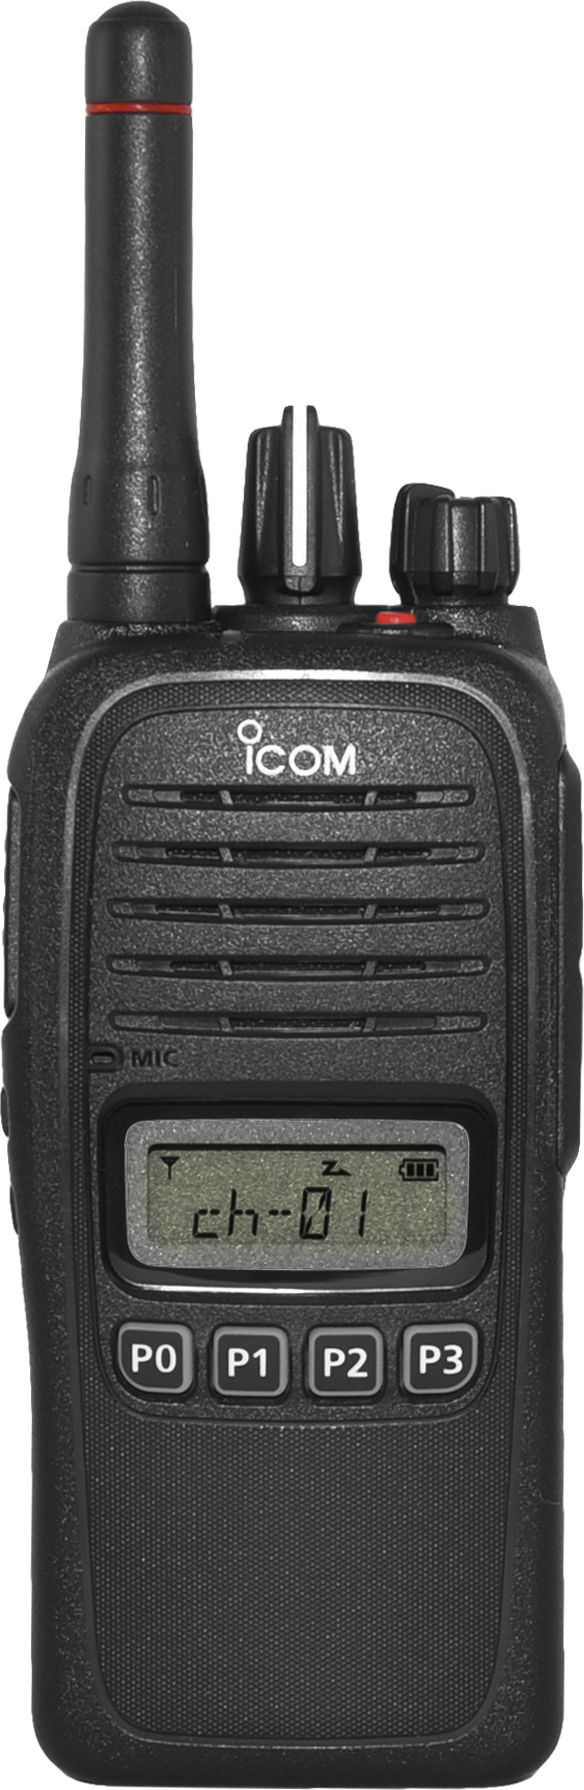 Icom IC-F1000S featured image